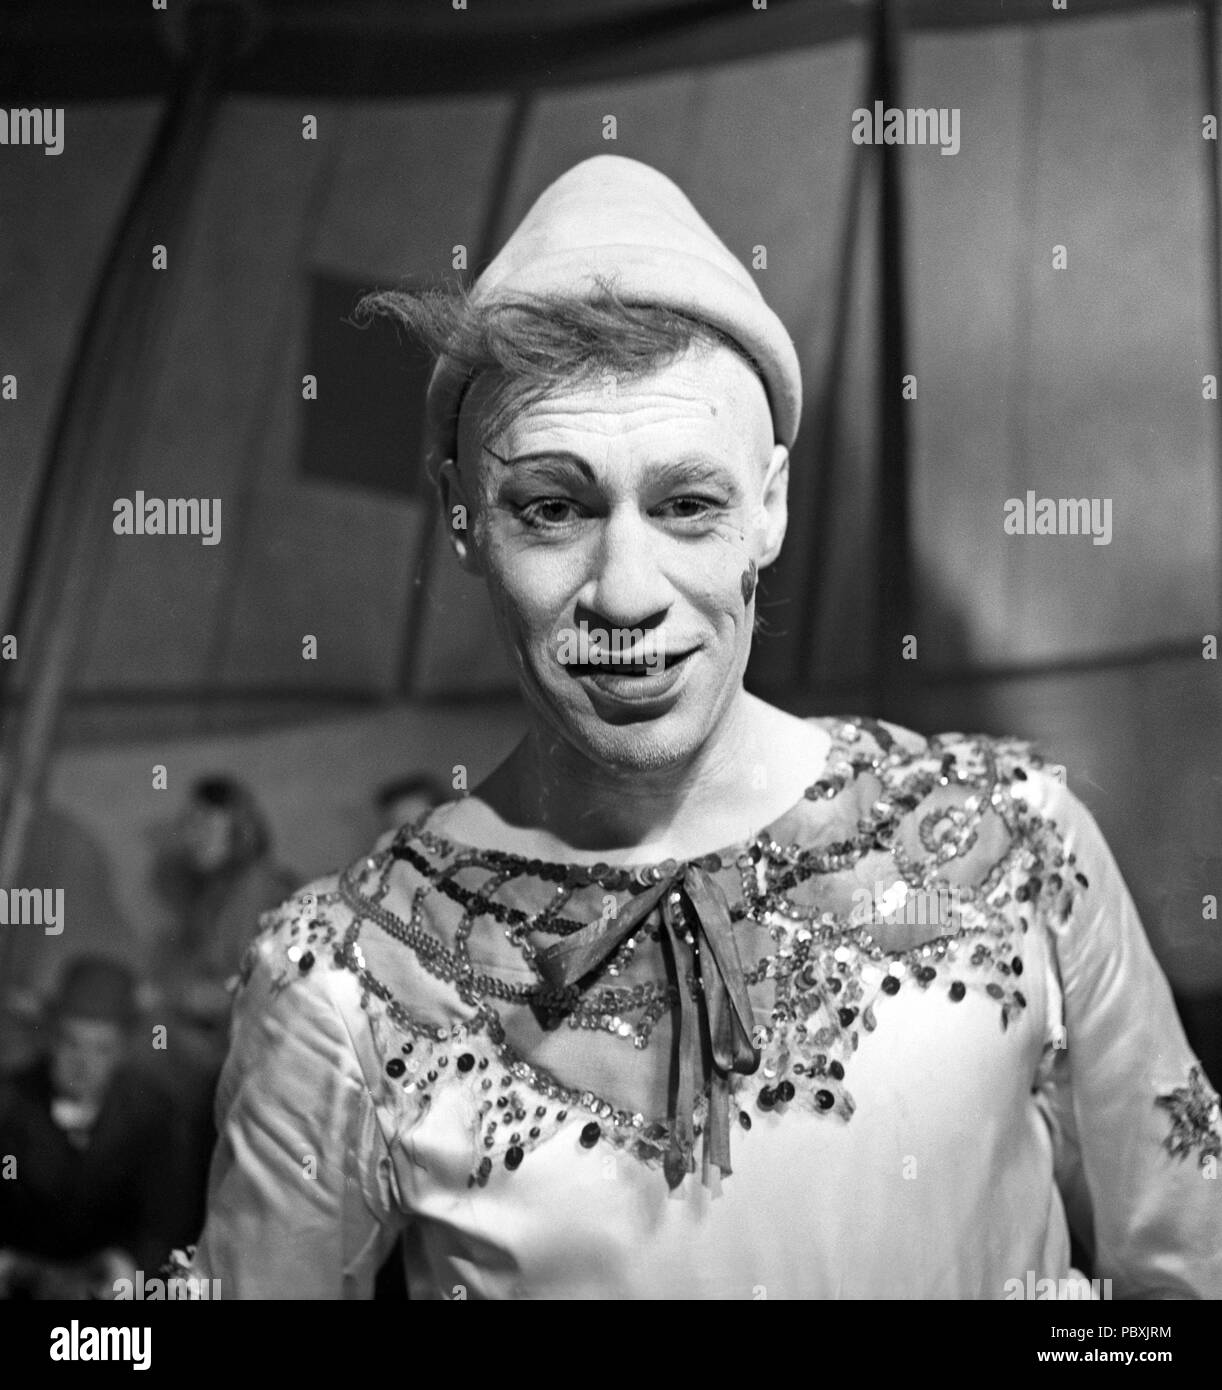 Ingmar Bergman. 1918-2007.  Swedish film director. Pictured here actor Anders Ek as the clown Teodor Frost 1953 on the film set of the movie Sawdust and Tinsel. Gycklarnas Afton. Photo: Kristoffersson/BL35-5 - Stock Image